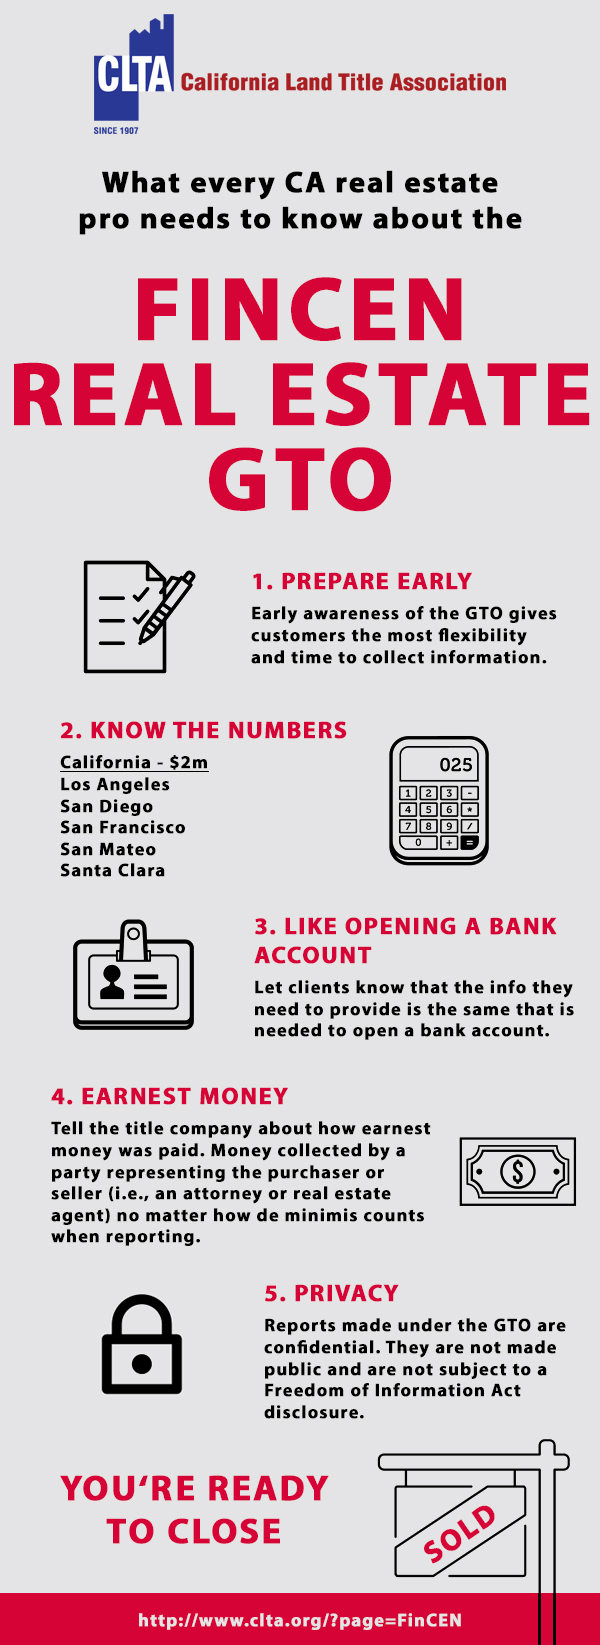 Clta fincen resource center california land title association intended for title companies to distribute to real estate professionals with which they are in contact this infographic quickly breaks down the basics of falaconquin